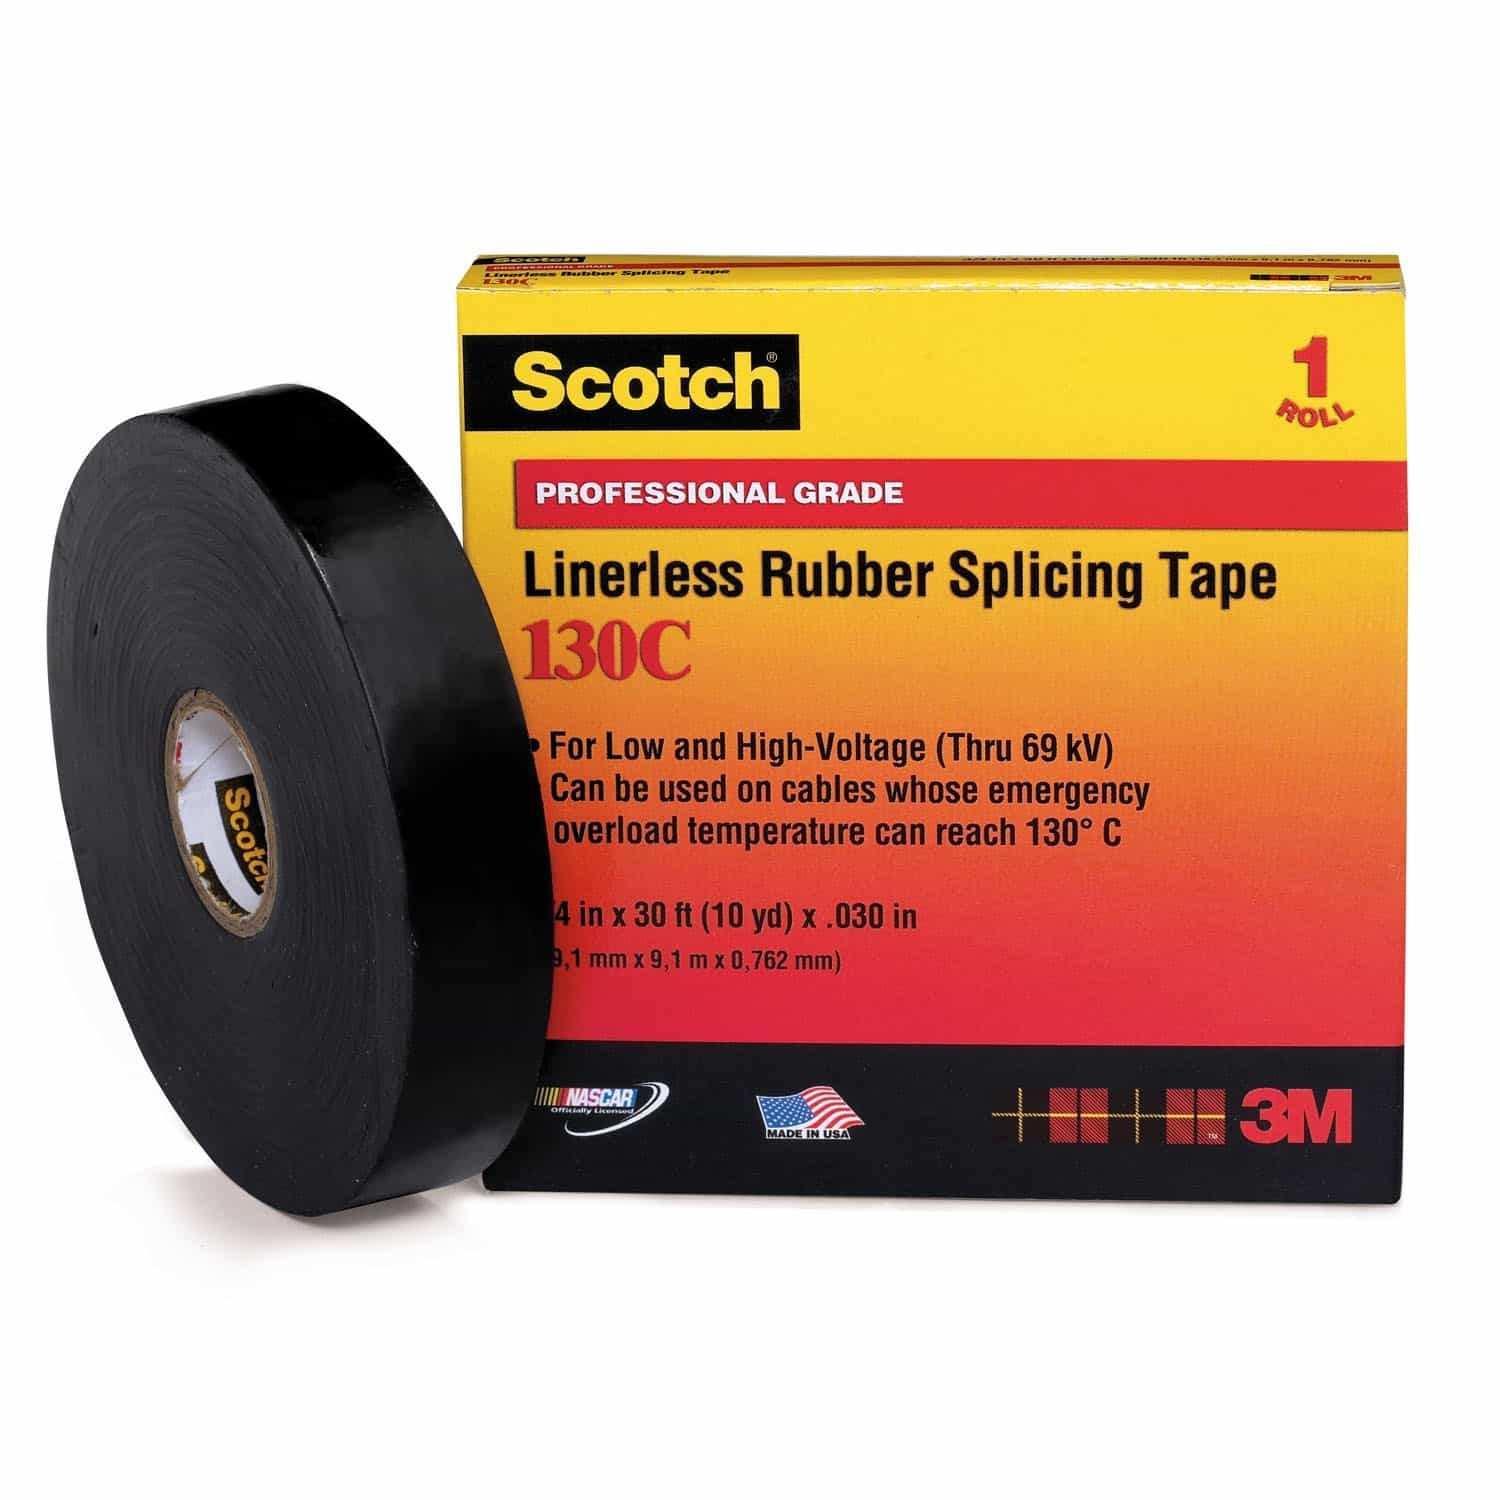 3M Scotch 130C Tape - ex stock